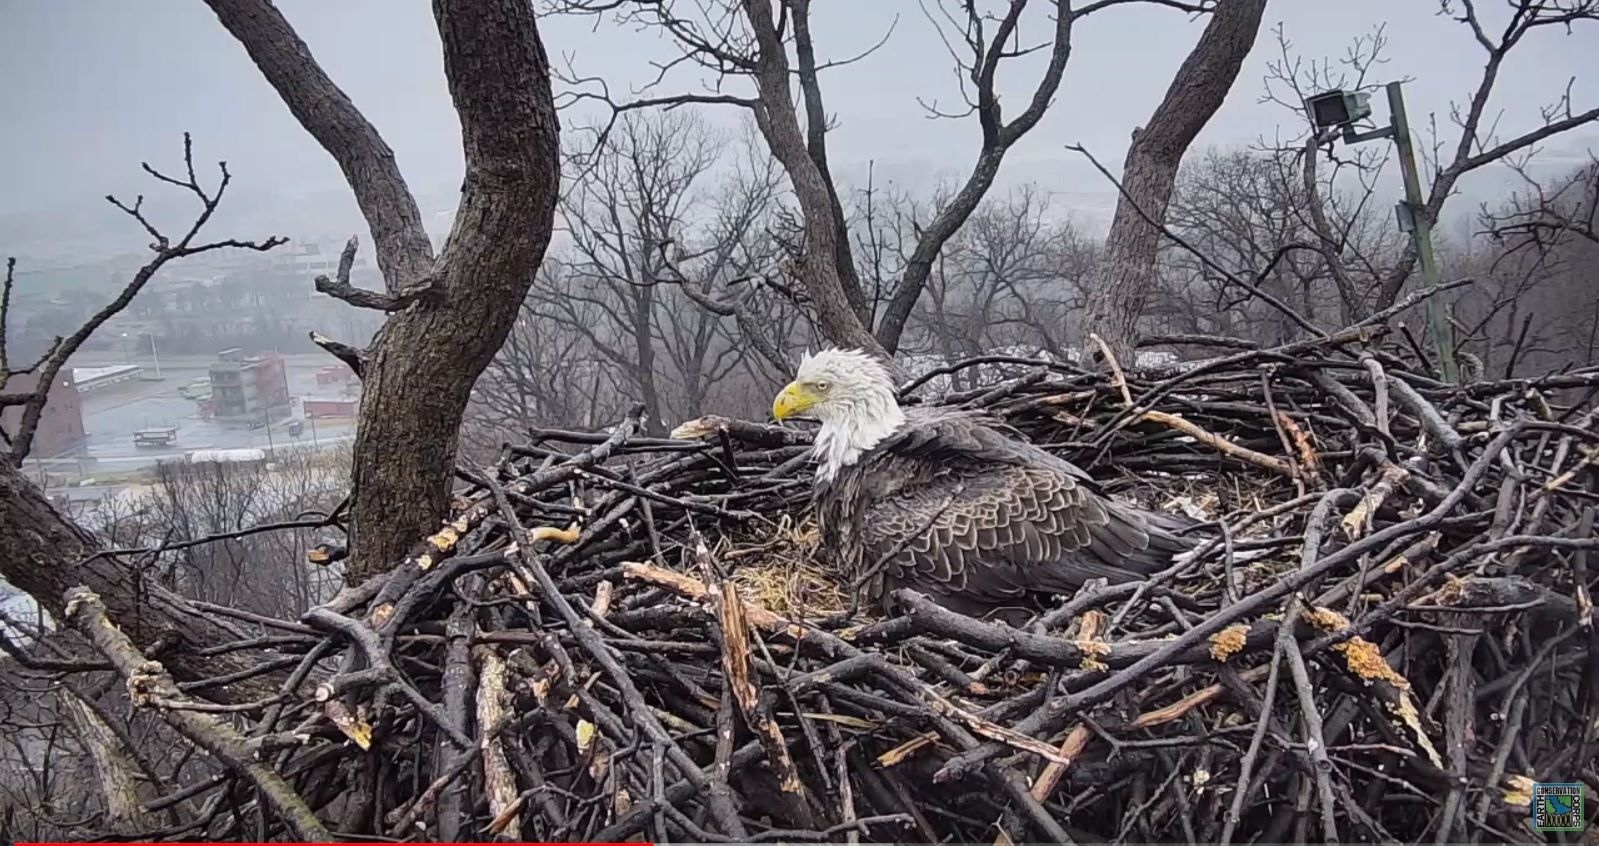 High drama, high in a tree for a DC bald eagle couple